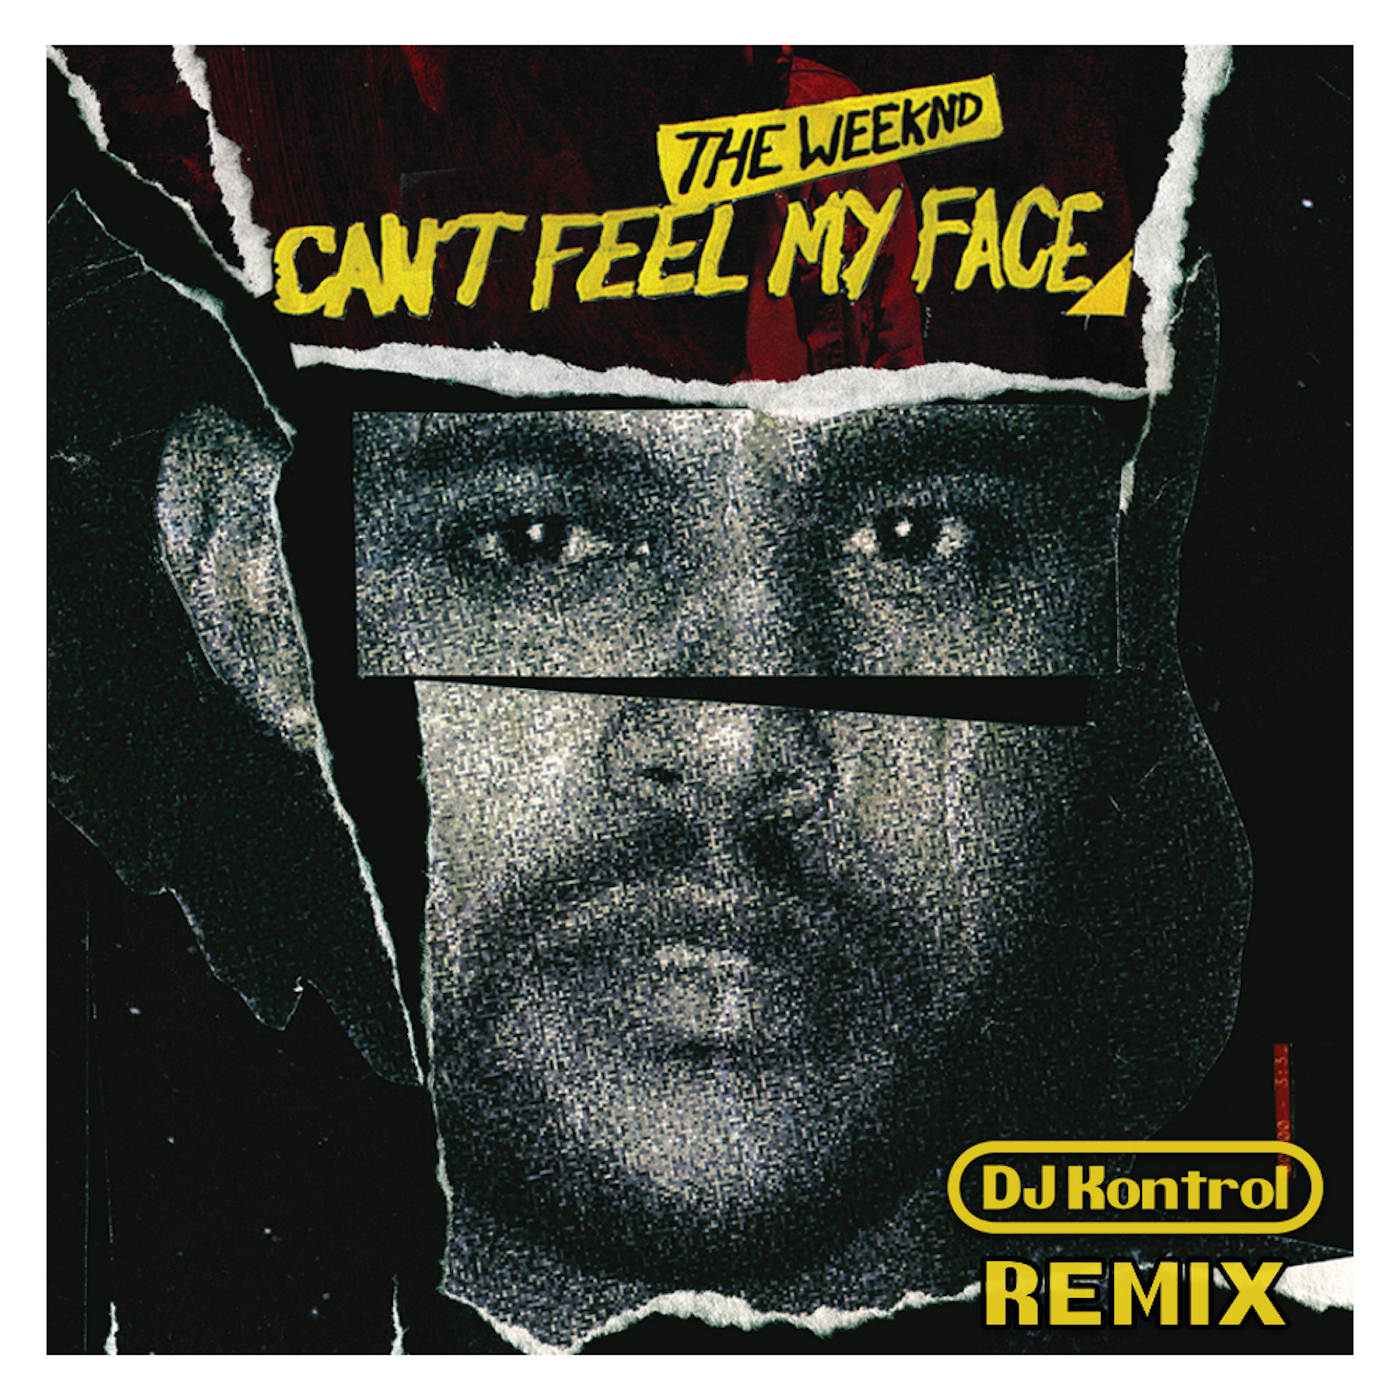 The Weeknd - Can't Feel My Face (DJ Kontrol Remix)